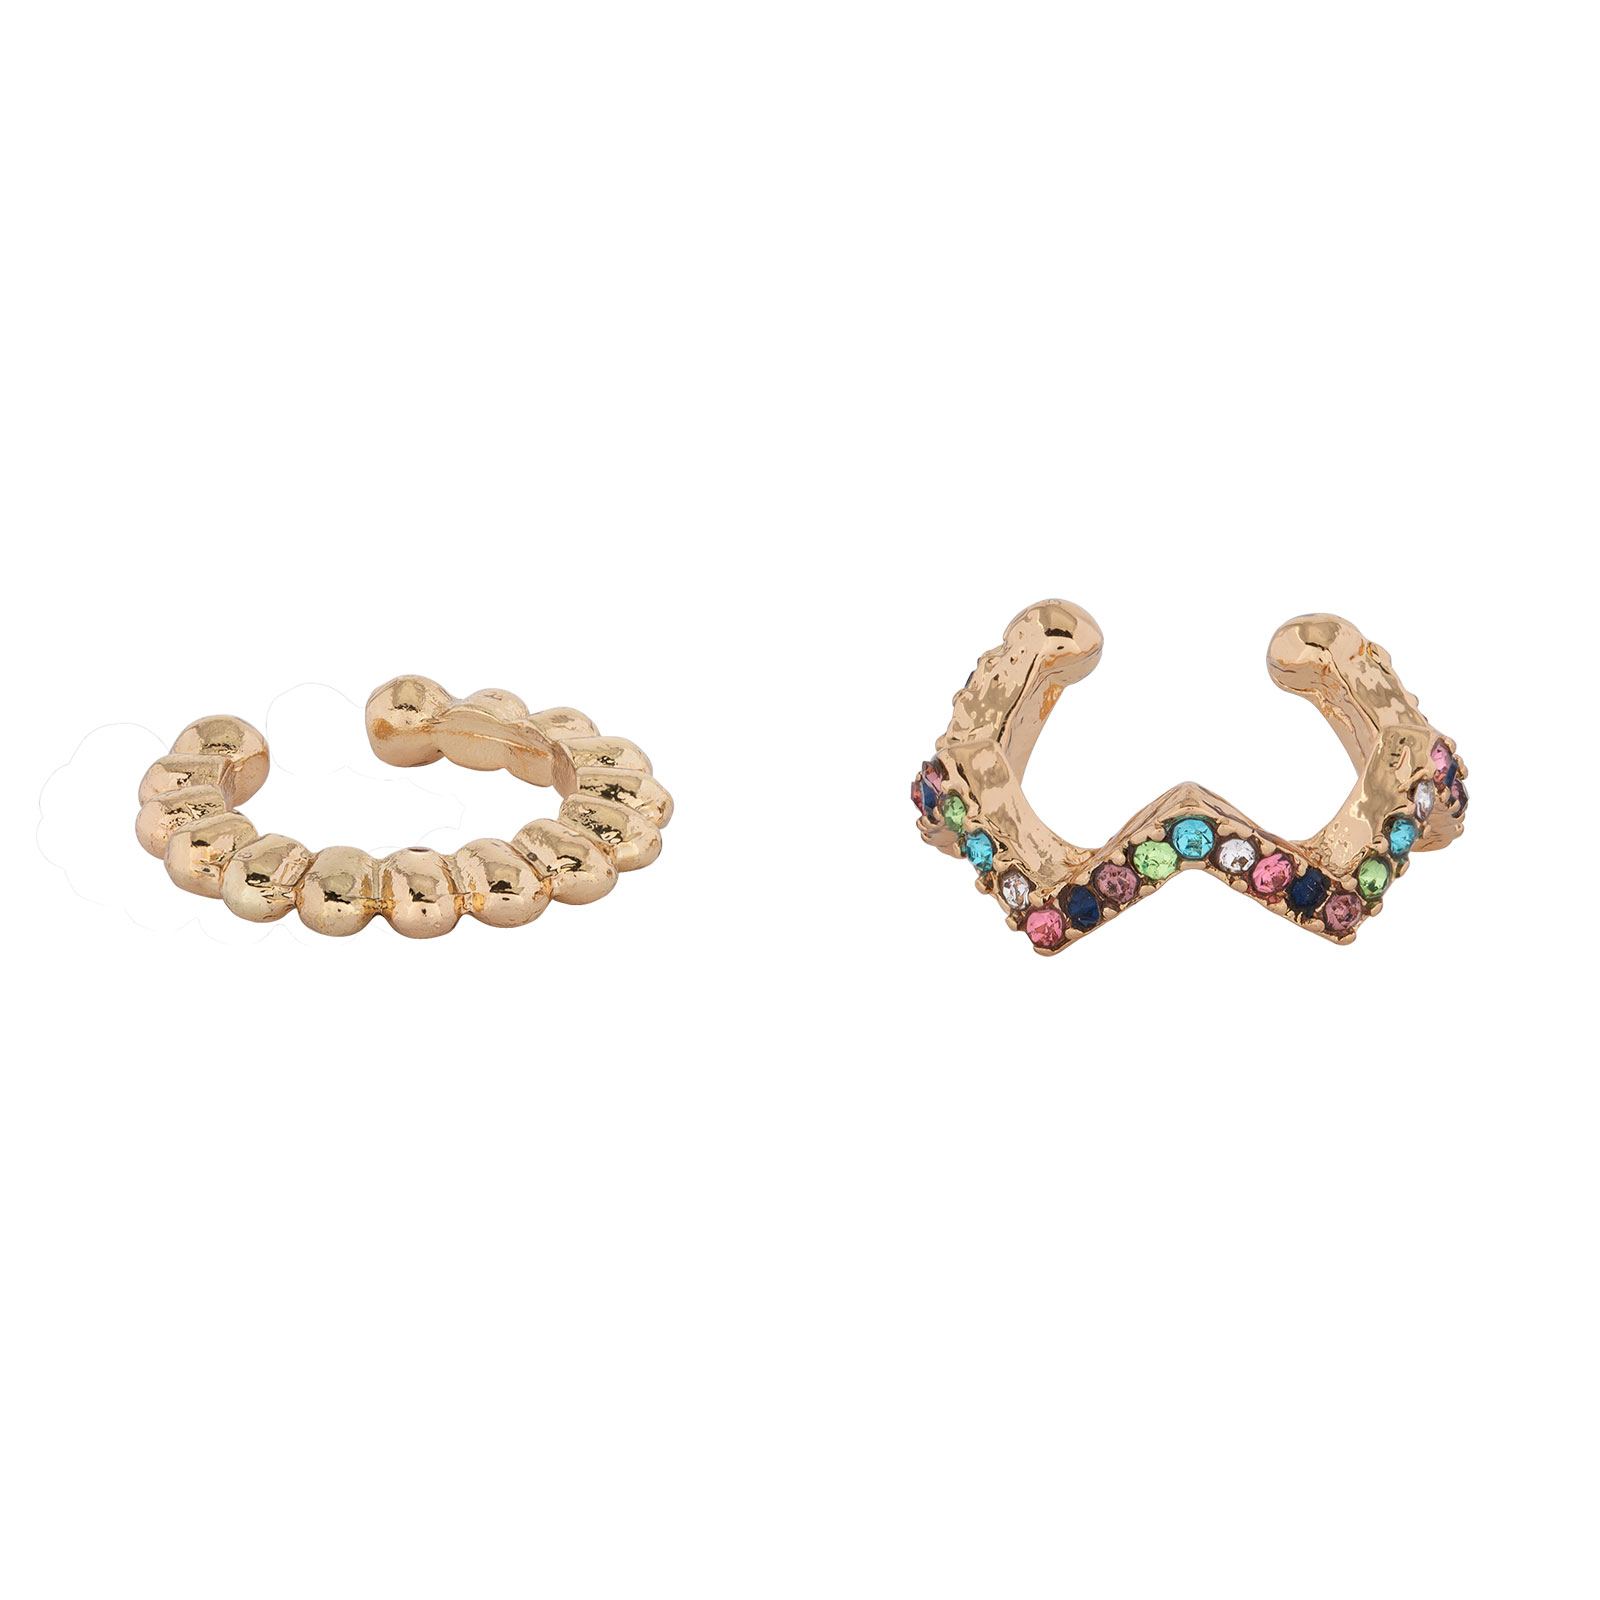 Ear cuffs Multicolor Montini -2 pack